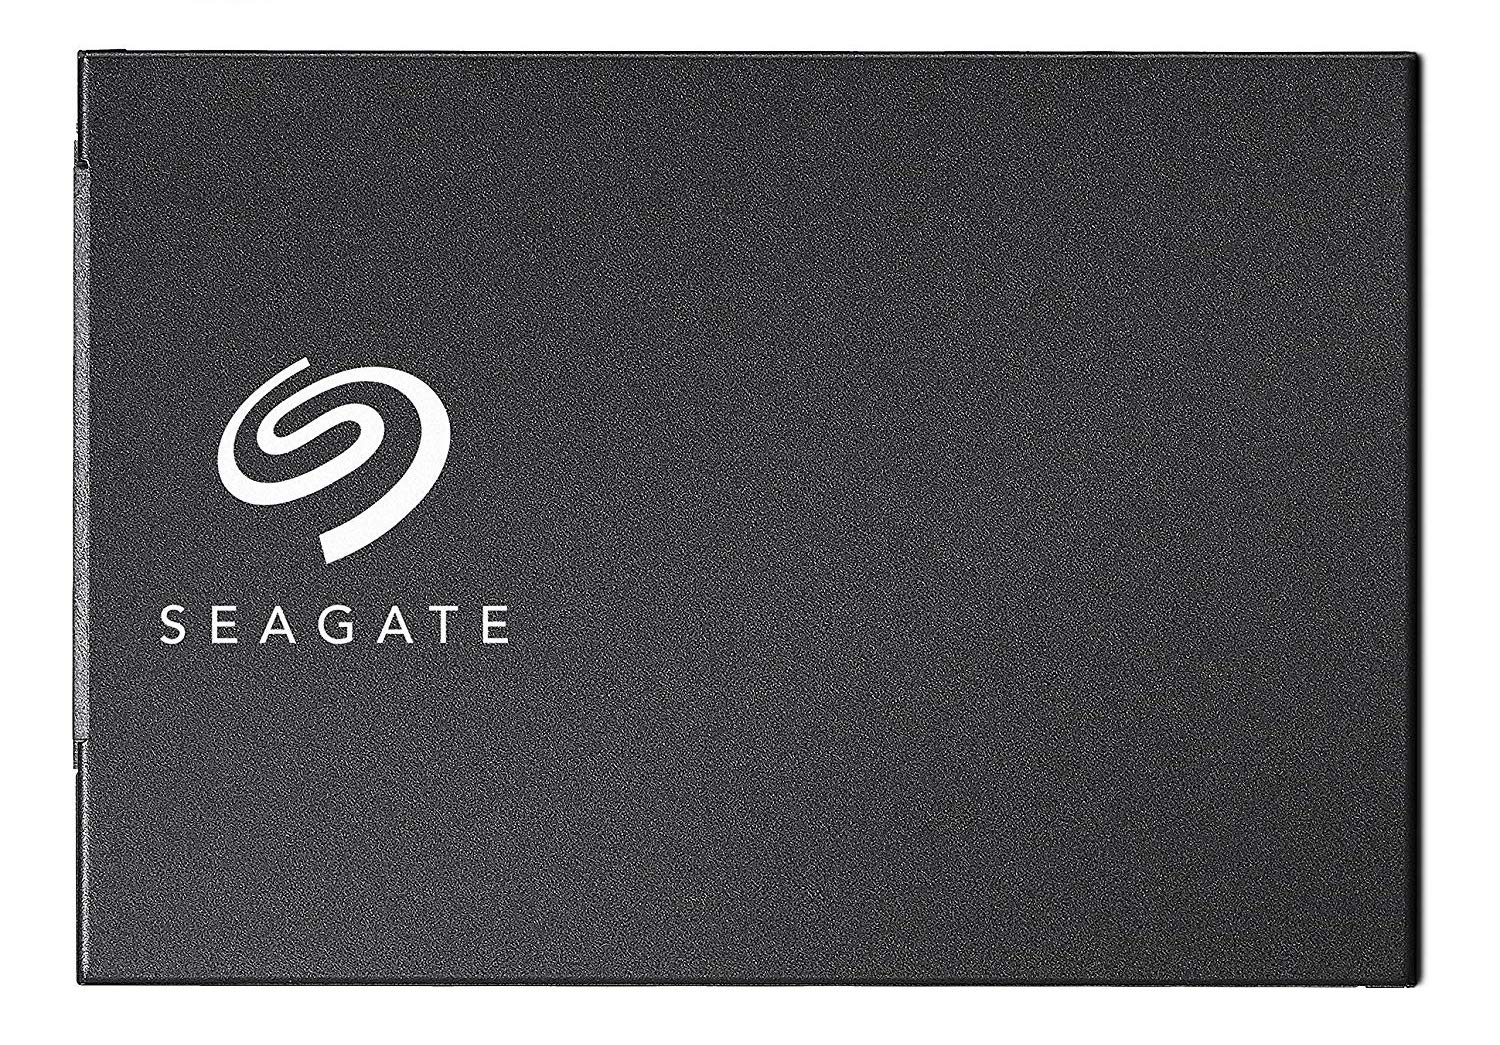 Seagate BarraCuda SSD revealed: Specs, price and speeds | Computing 1